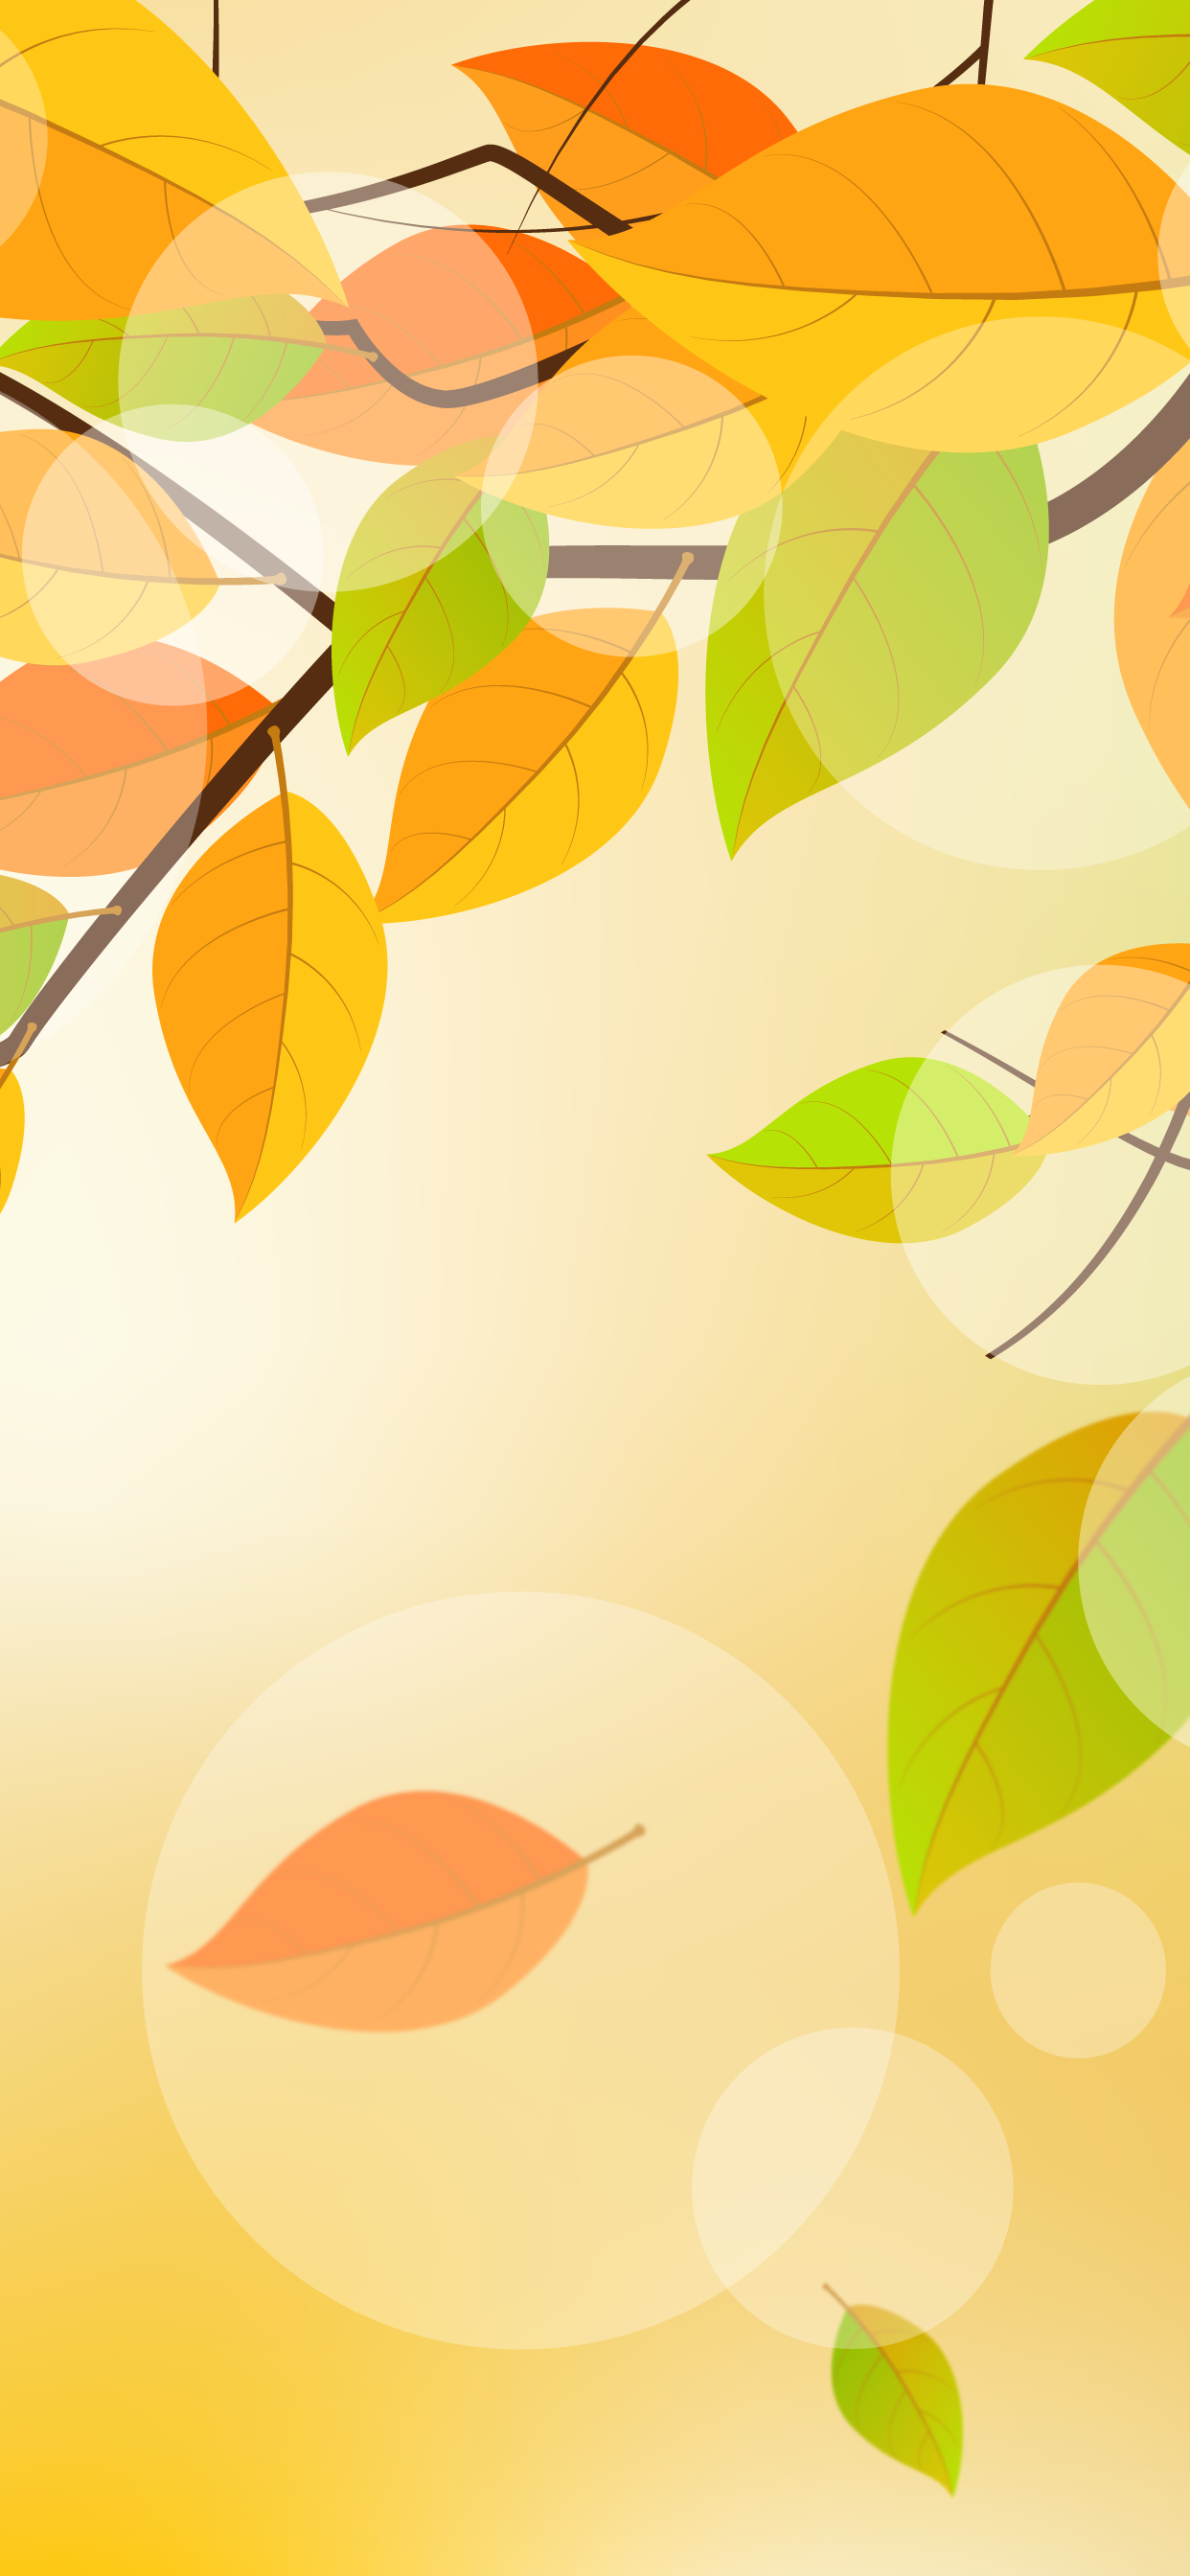 Autumn leaves falling from tree wallpaper